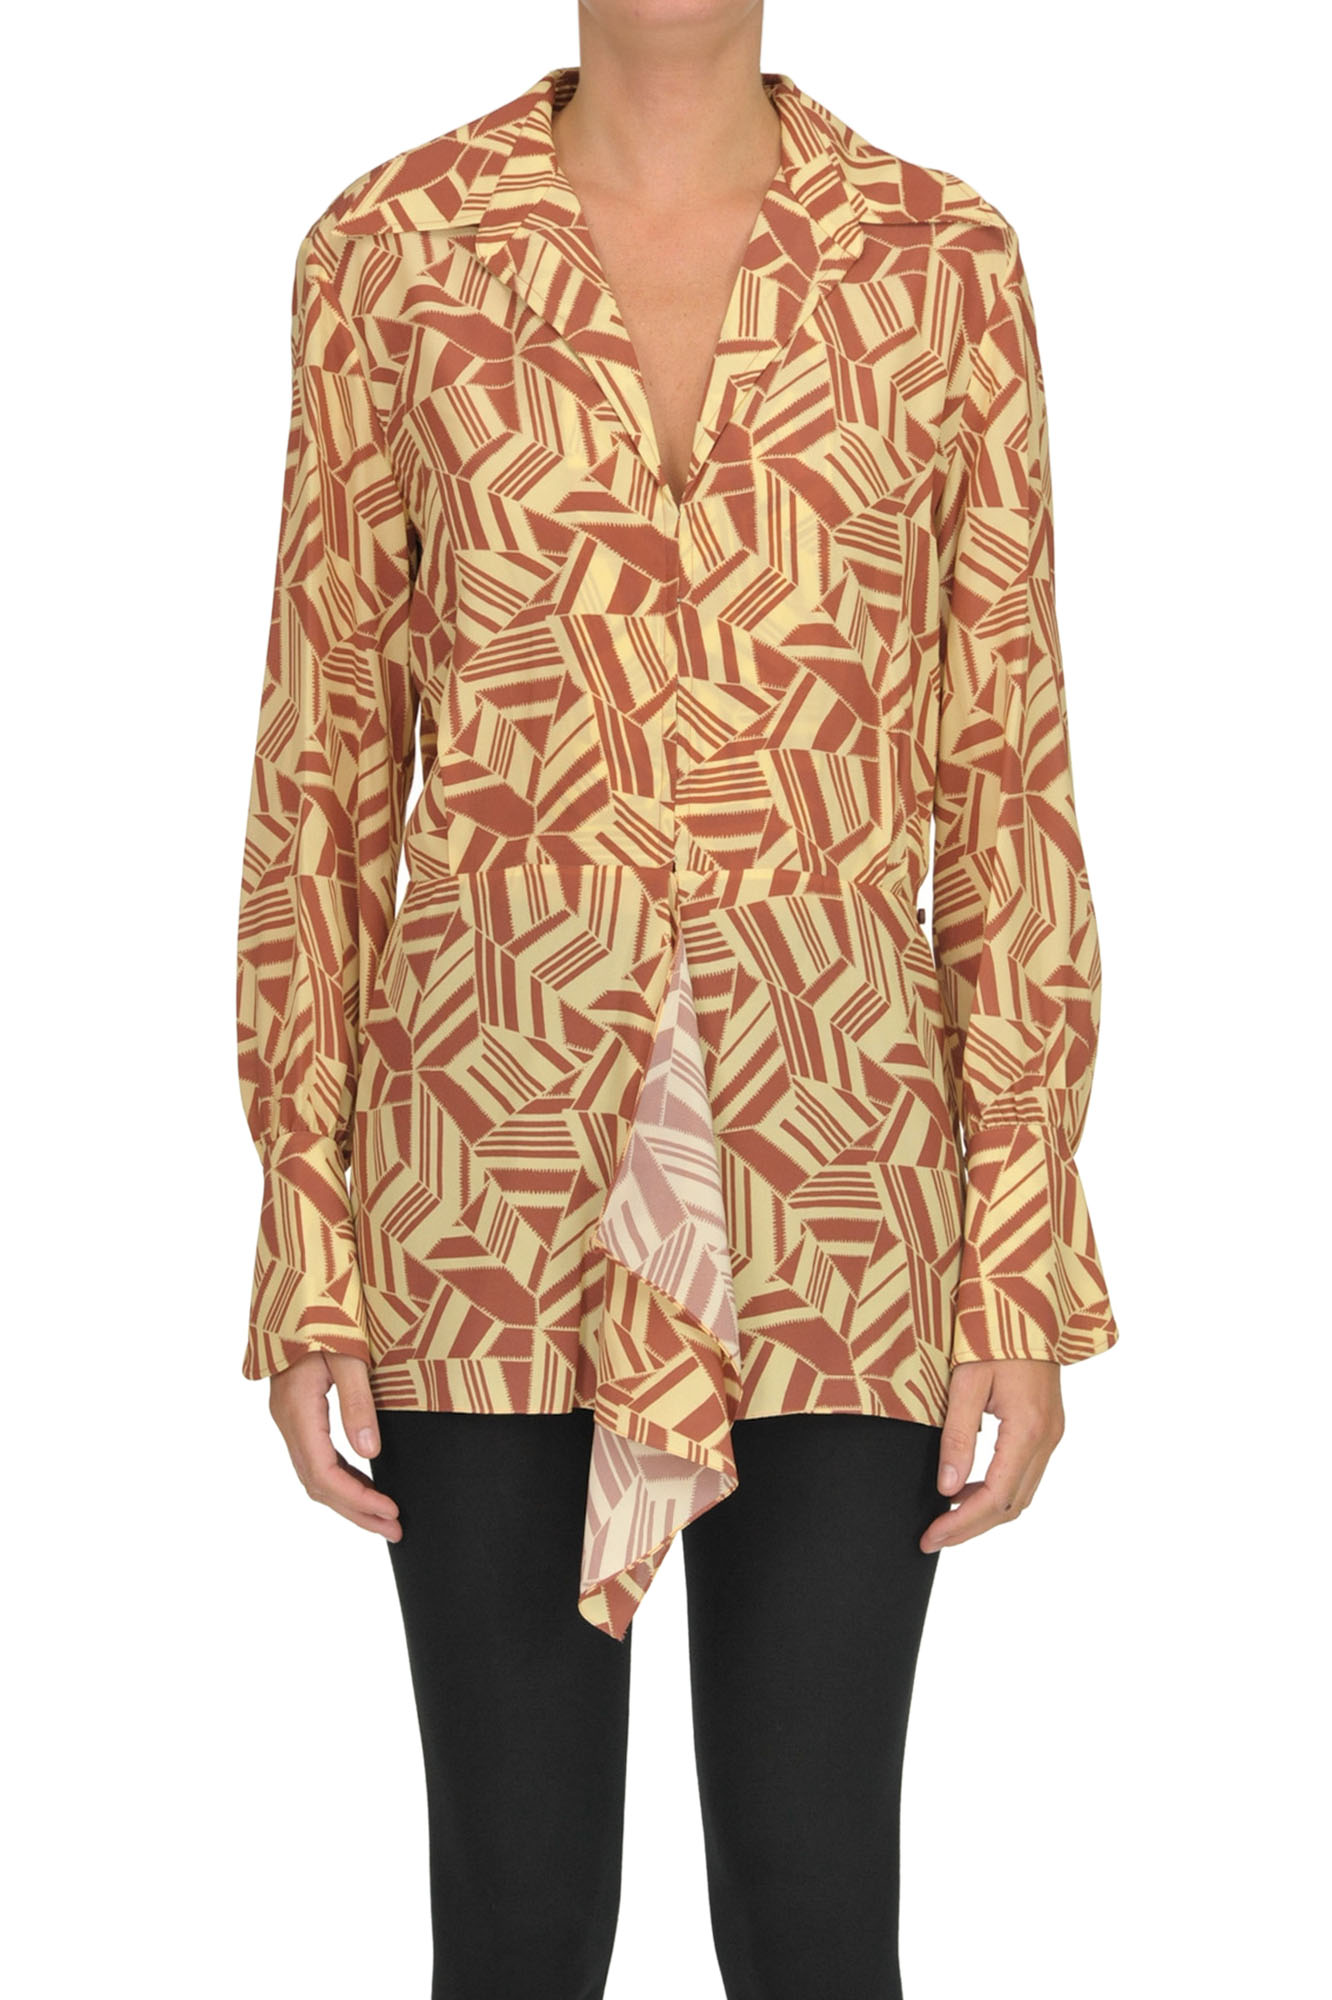 ChloÉ Printed Silk Blouse In Light Brown